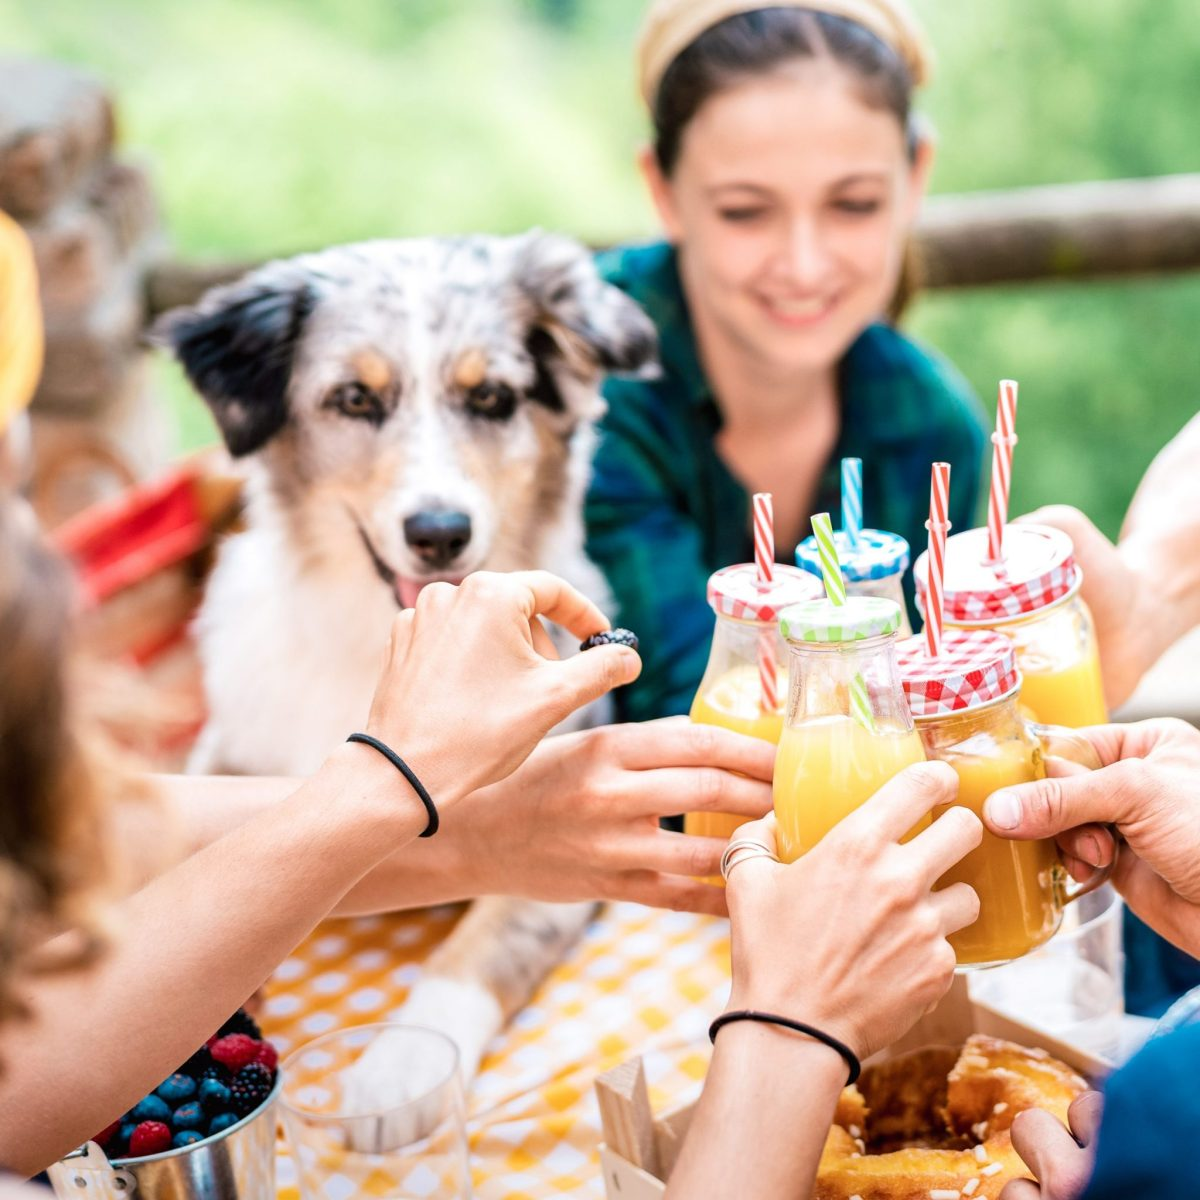 Happy friends toasting healthy orange fruit juice at countryside picnic - Friendship concept with alternative people having fun together with family dog on afternoon relax time - Vivid bright filter